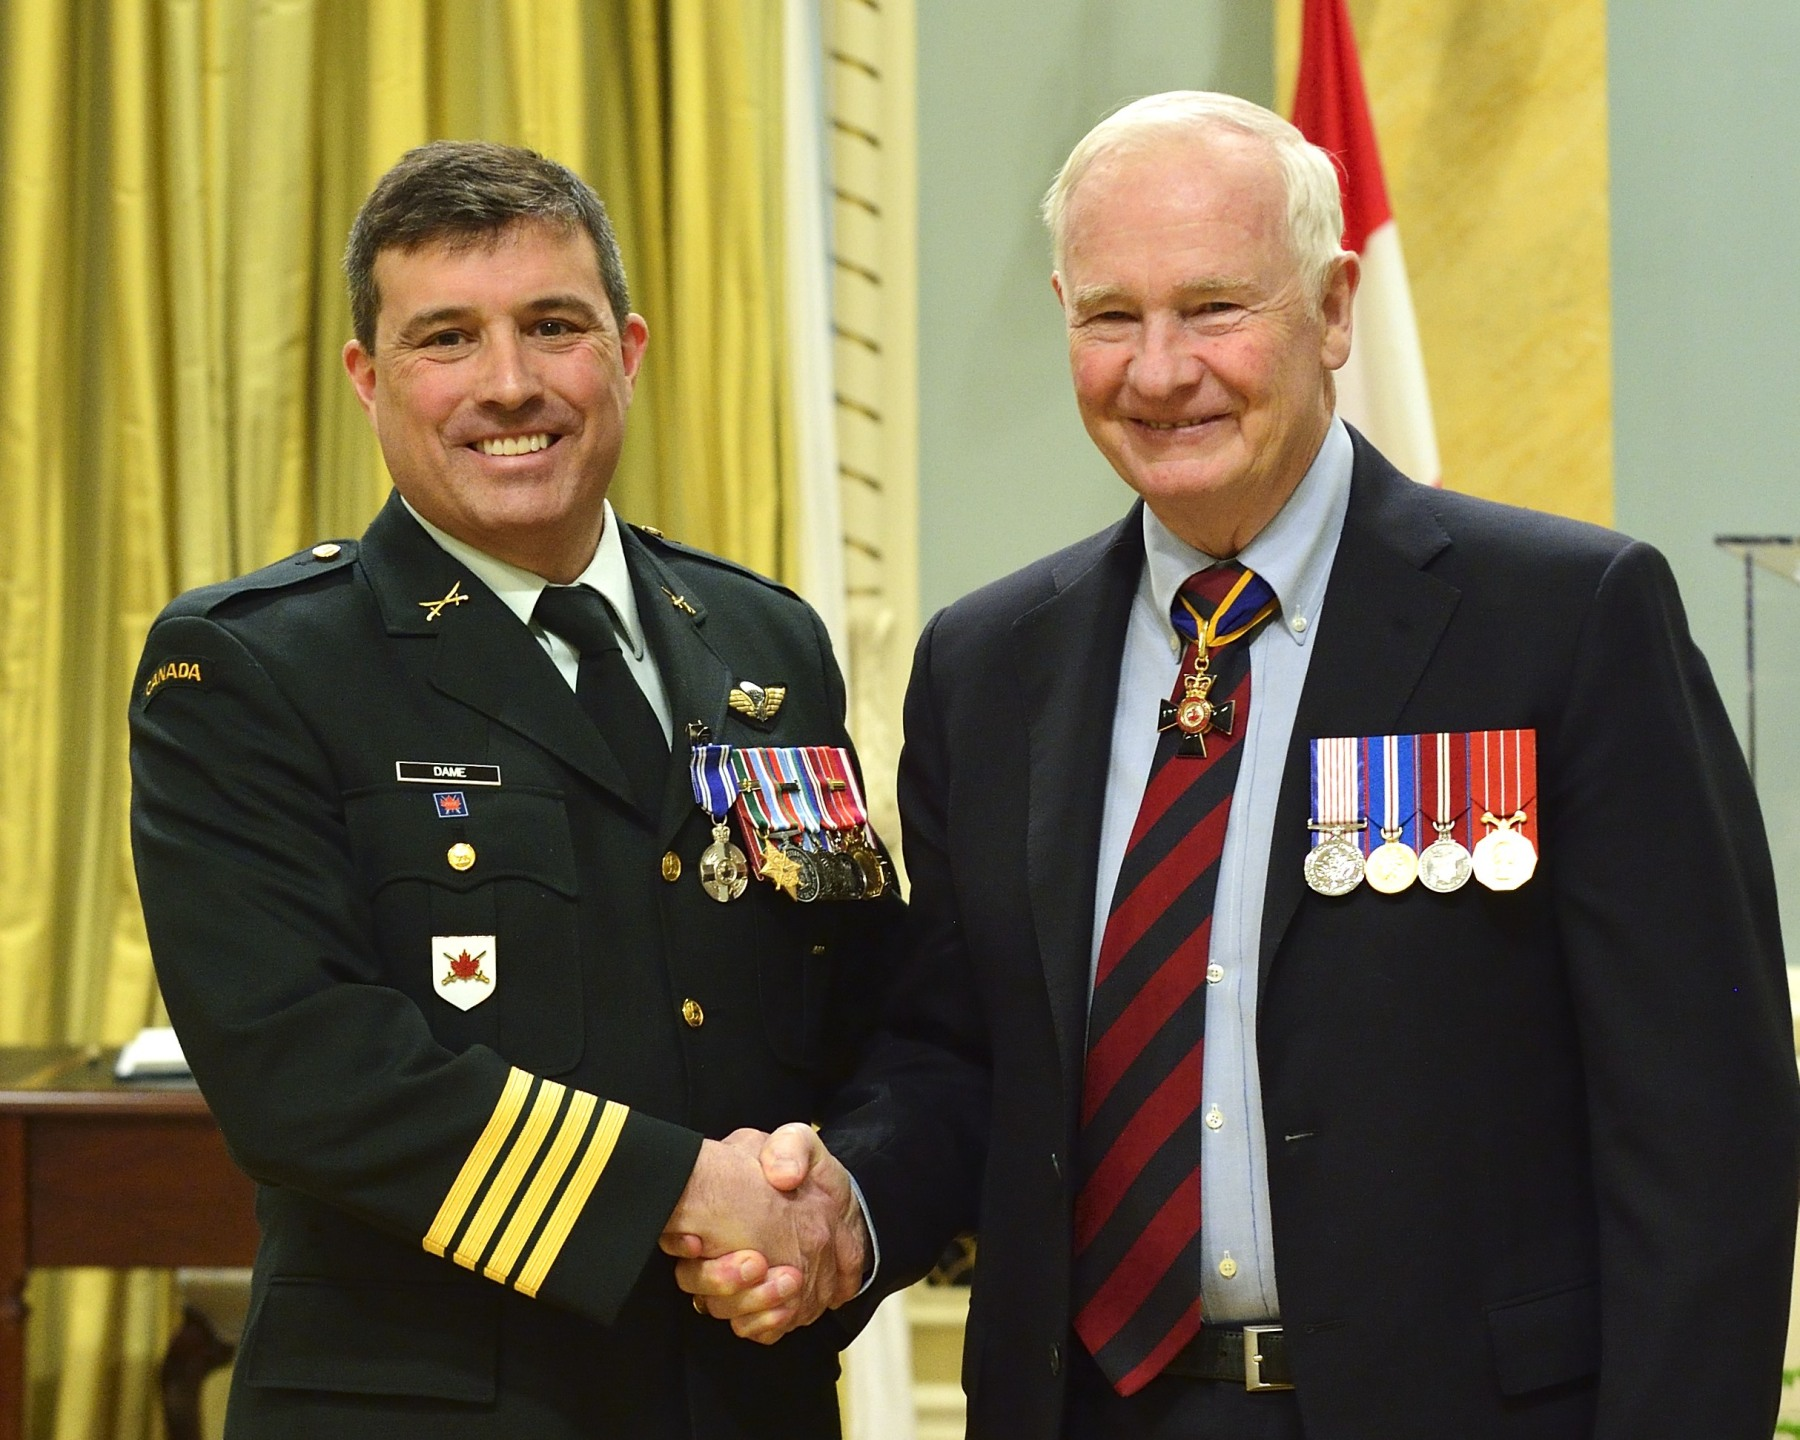 Colonel Grant Fernand Dame, M.S.M., C.D. (Montréal, Quebec) received the Meritorious Service Medal. From July 2010 to July 2011, while deployed to the United Nations Stabilization Mission in Haiti as chief of staff, Colonel Dame synchronized the efforts of over 9 000 UN personnel. Confronted with concurrent catastrophes of cholera, violence and severe weather, he nevertheless helped the mission achieve outstanding results, particularly in the areas of hurricane relief and security for the presidential elections. Colonel Dame's leadership and work ethic contributed directly to mission success and enhanced Canada's international reputation.